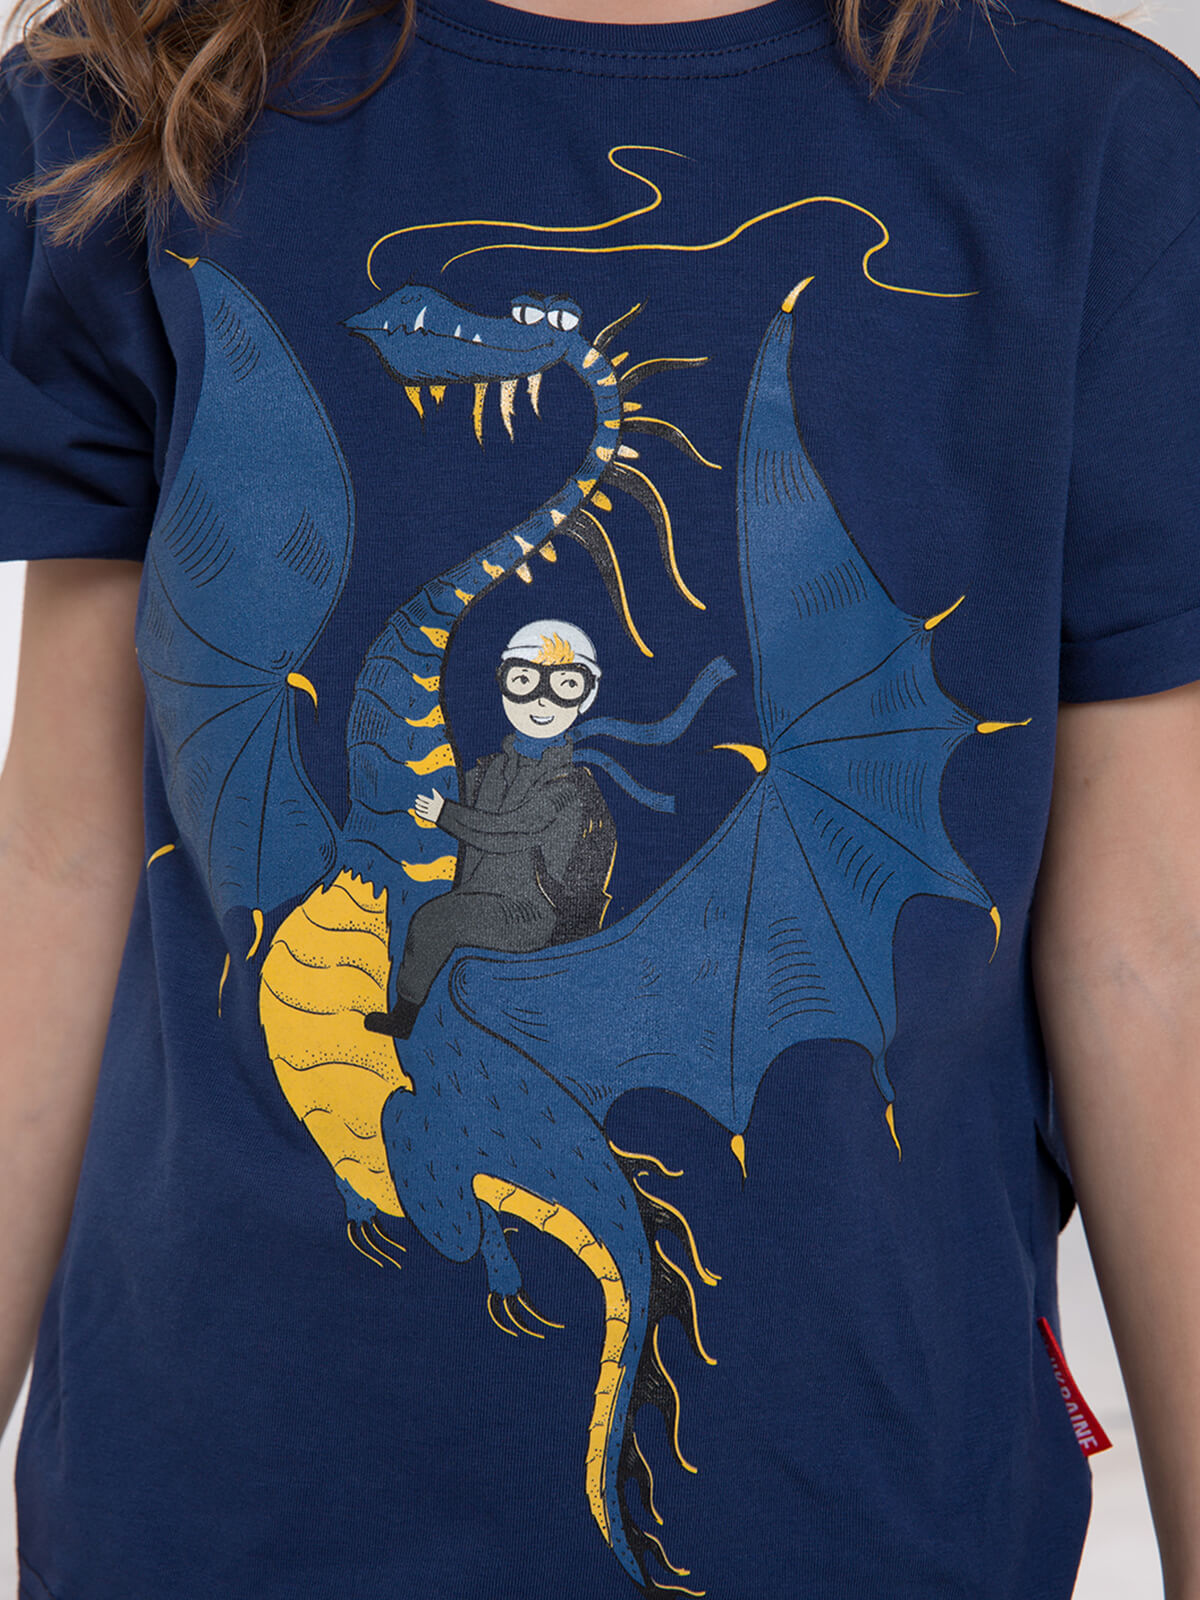 Kids T-Shirt Dragon. Color navy blue.  Technique of prints applied: silkscreen printing, picture glowing in the dark.